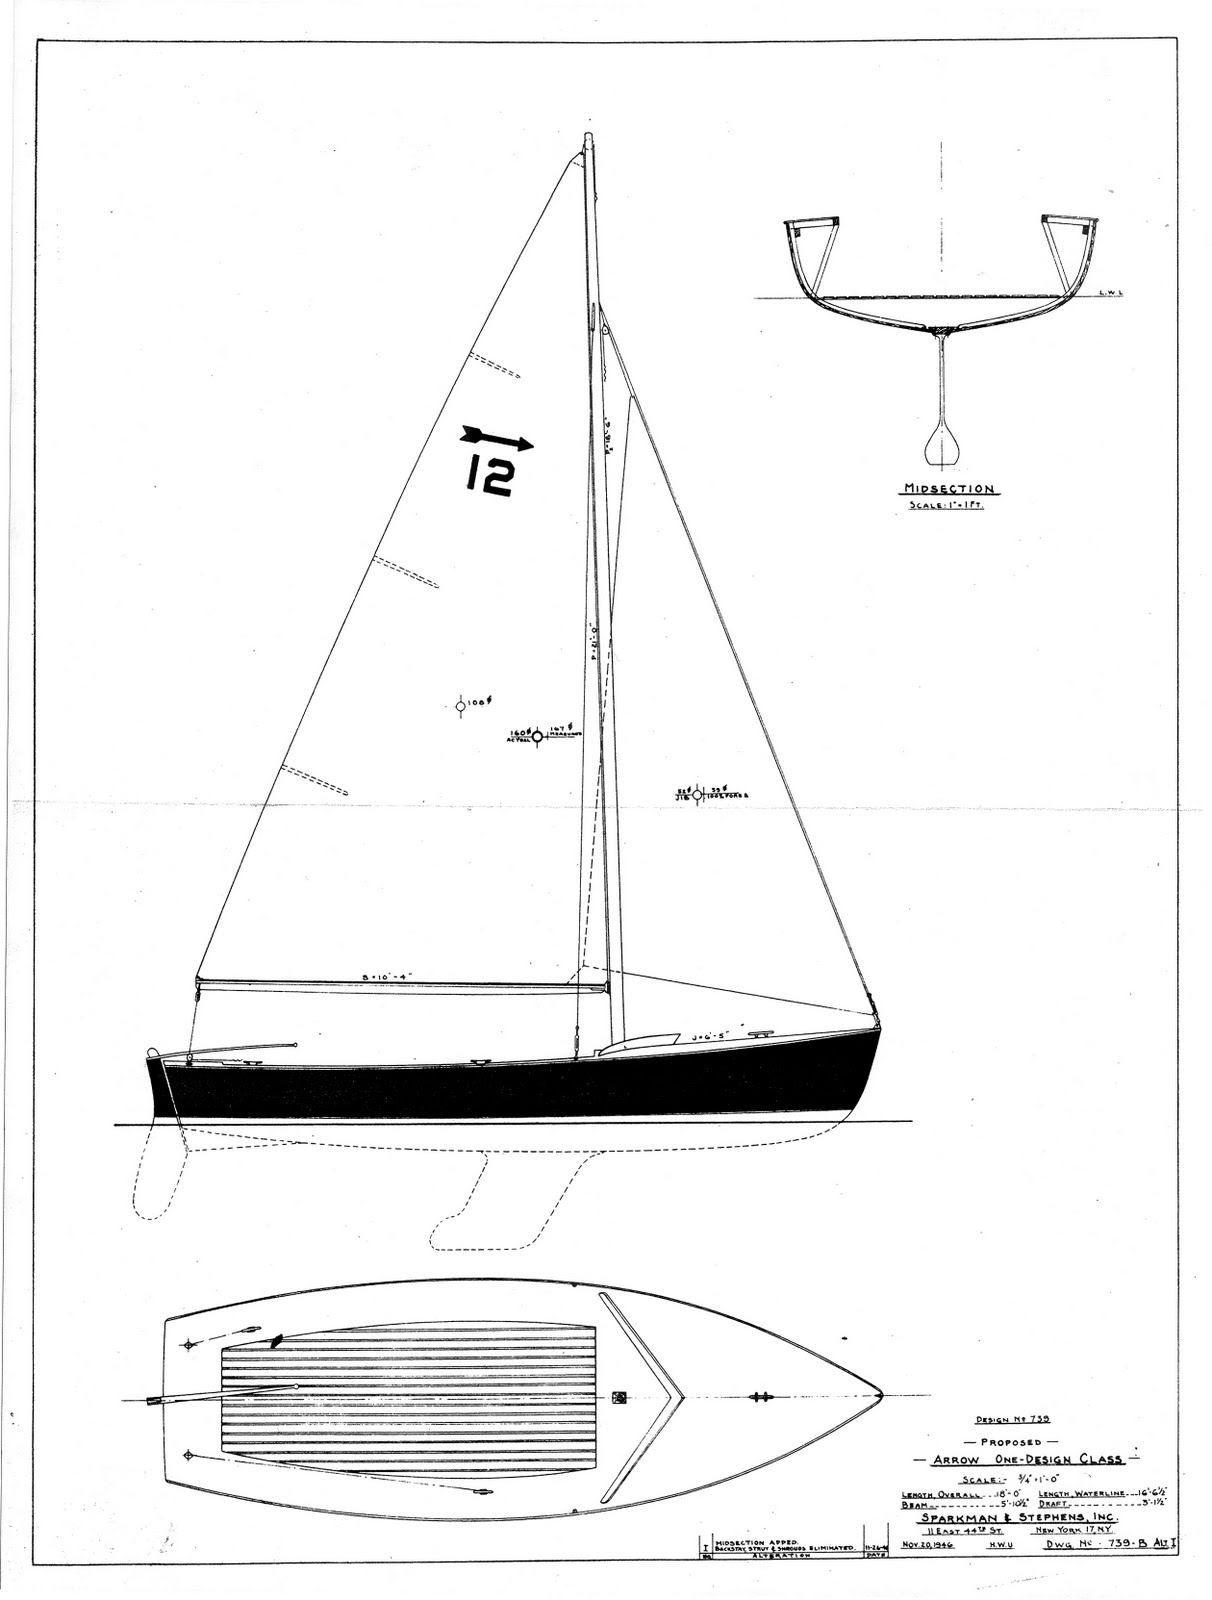 Plans for small boat keel Guide ~ KYK